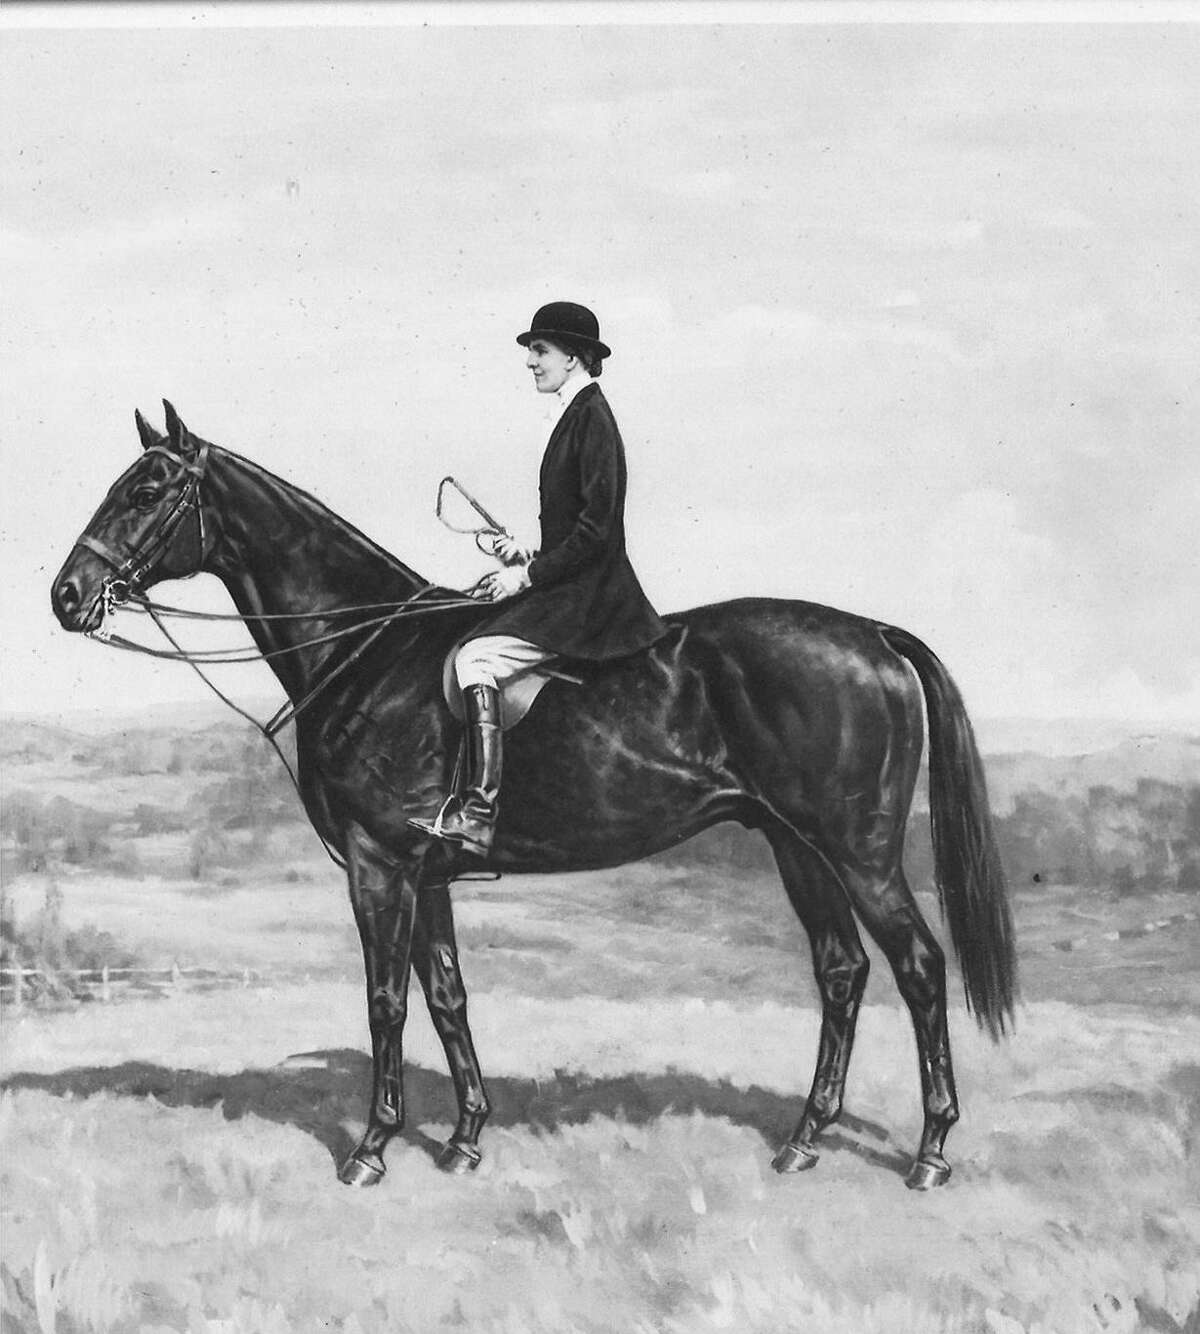 The cover of this past week's Greenwich Riding and Trails Association event program featured a photograph of a painting of the late Joan Fisher Faulkner astride her favorite horse,